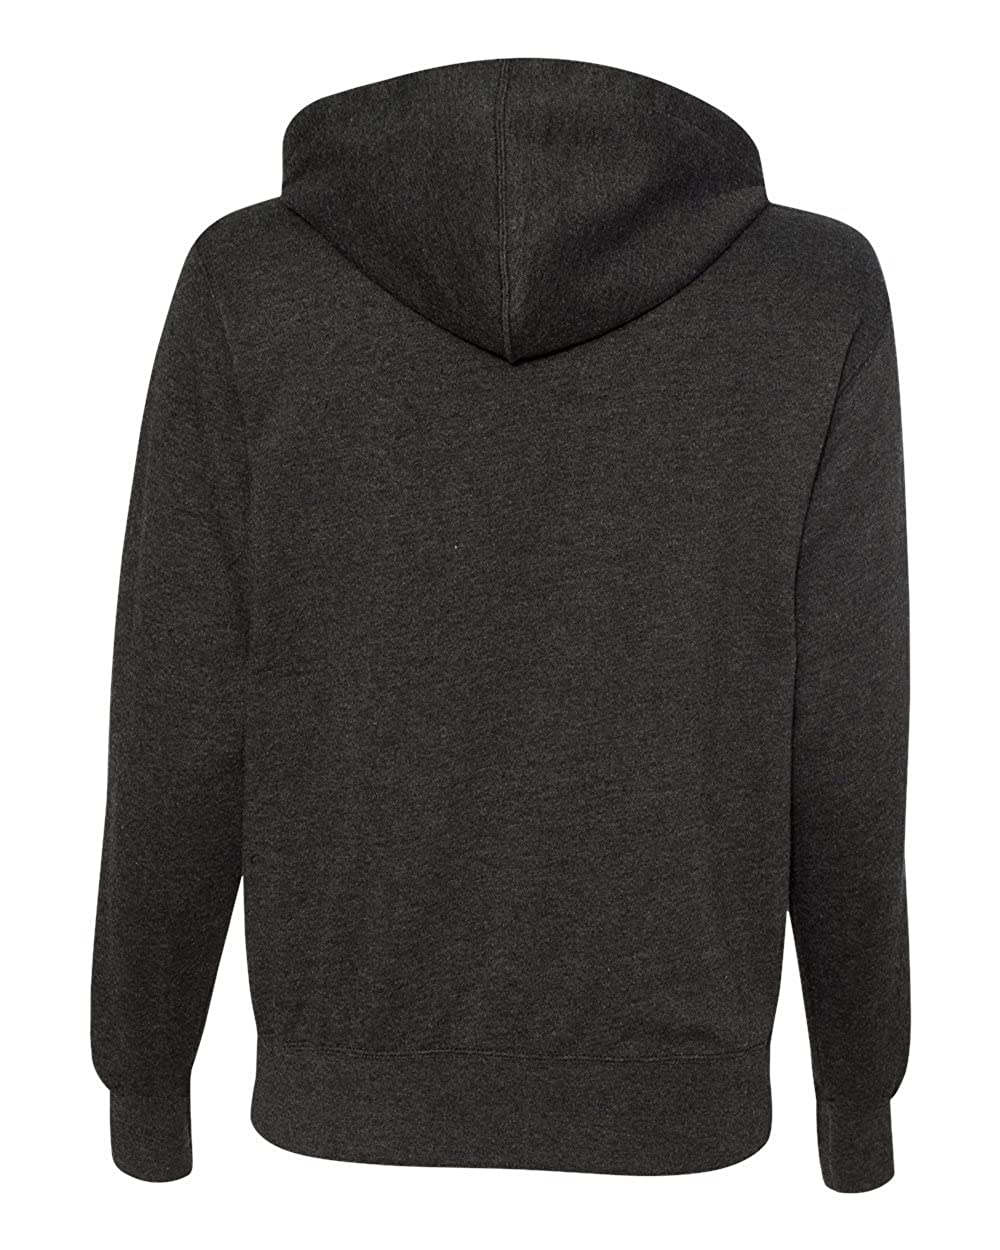 Mens French Terry Sweatshirt Independent Trading Co S Charcoal Heather